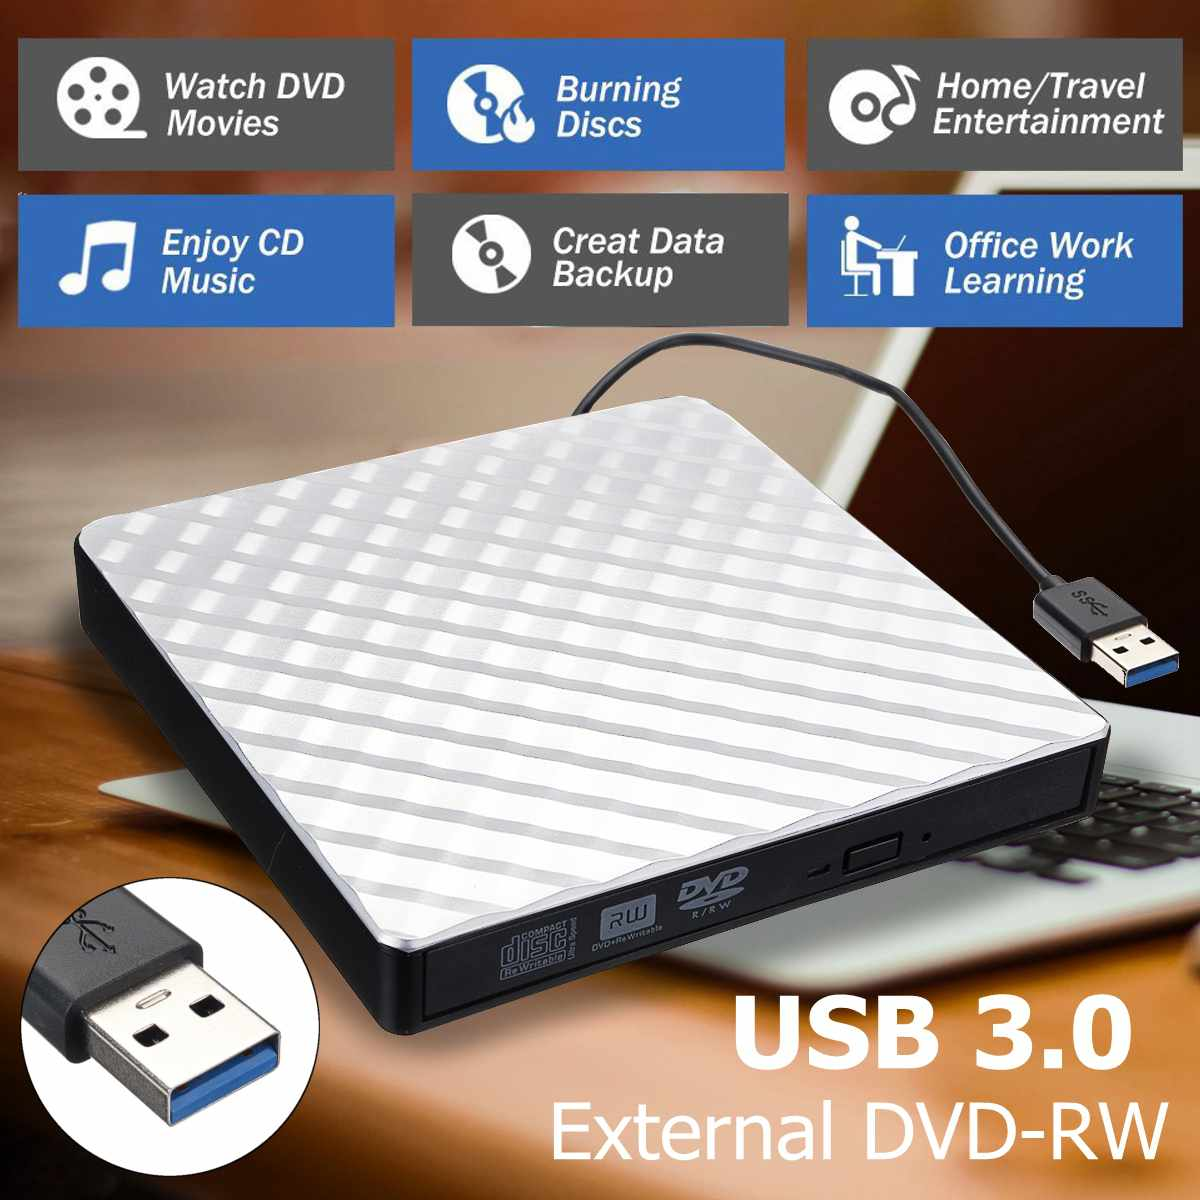 External USB 3.0 DVD RW CD Writer Slim Carbon Grain Drive